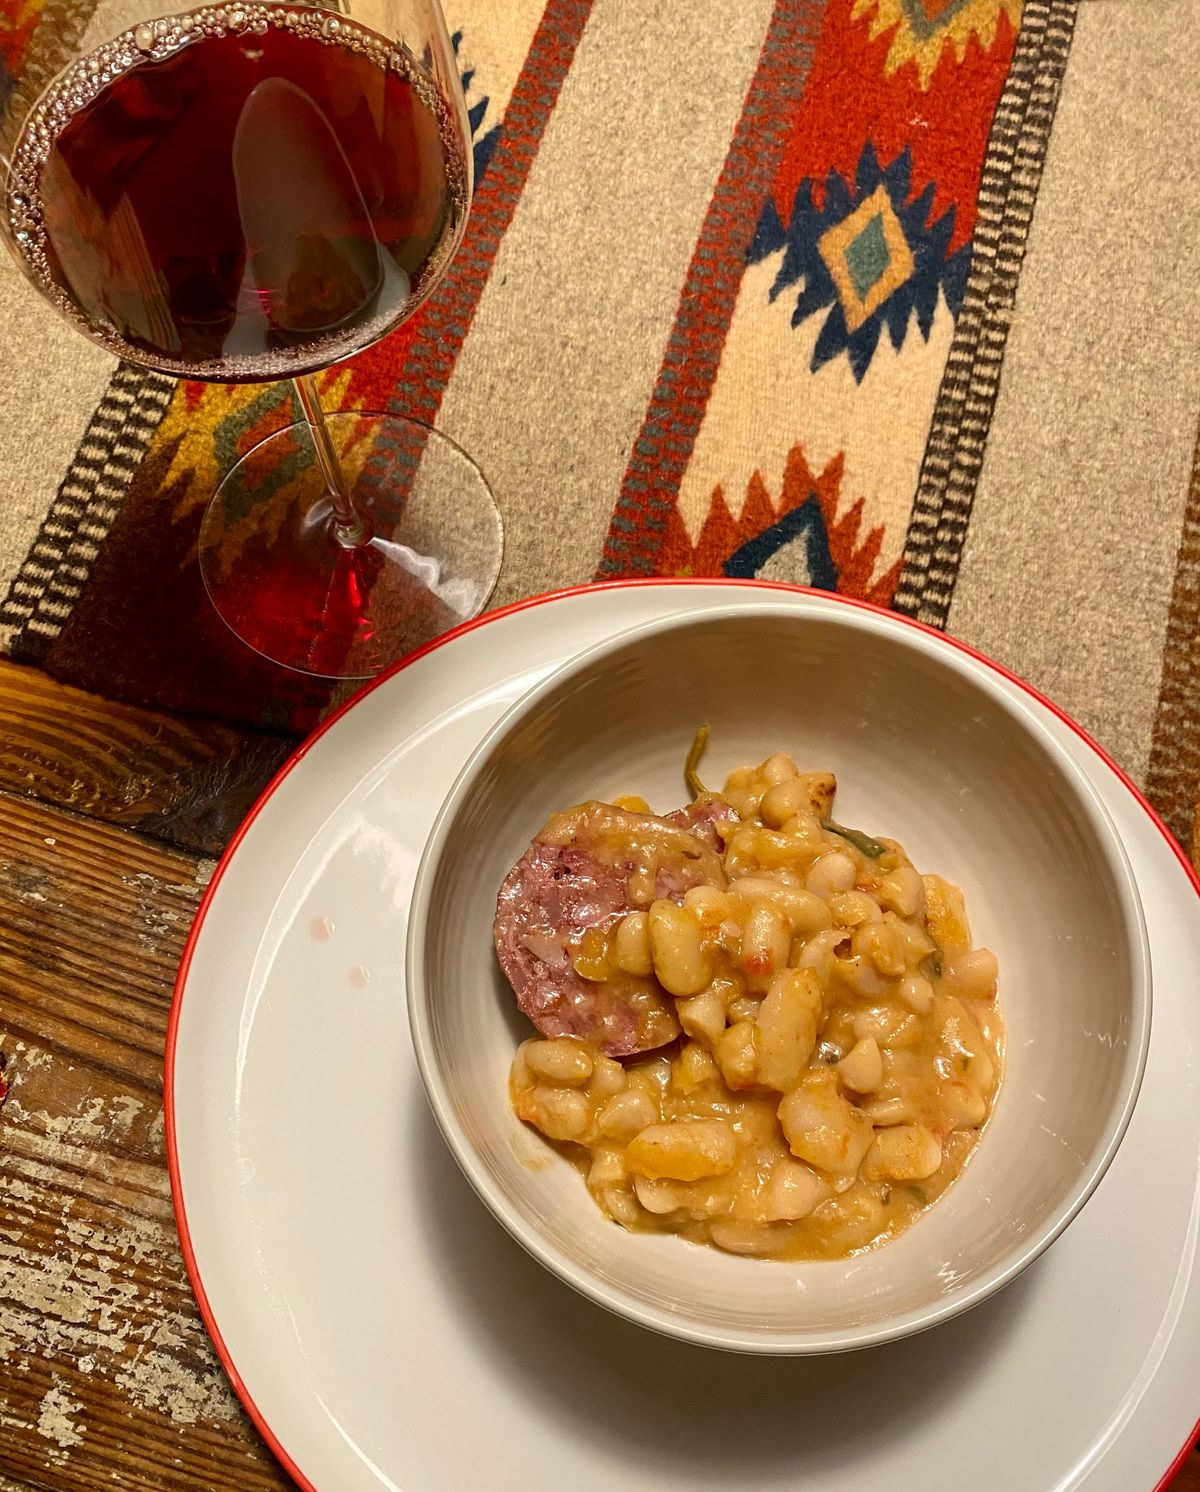 A bowl of white beans and sausage next to a glass of wine